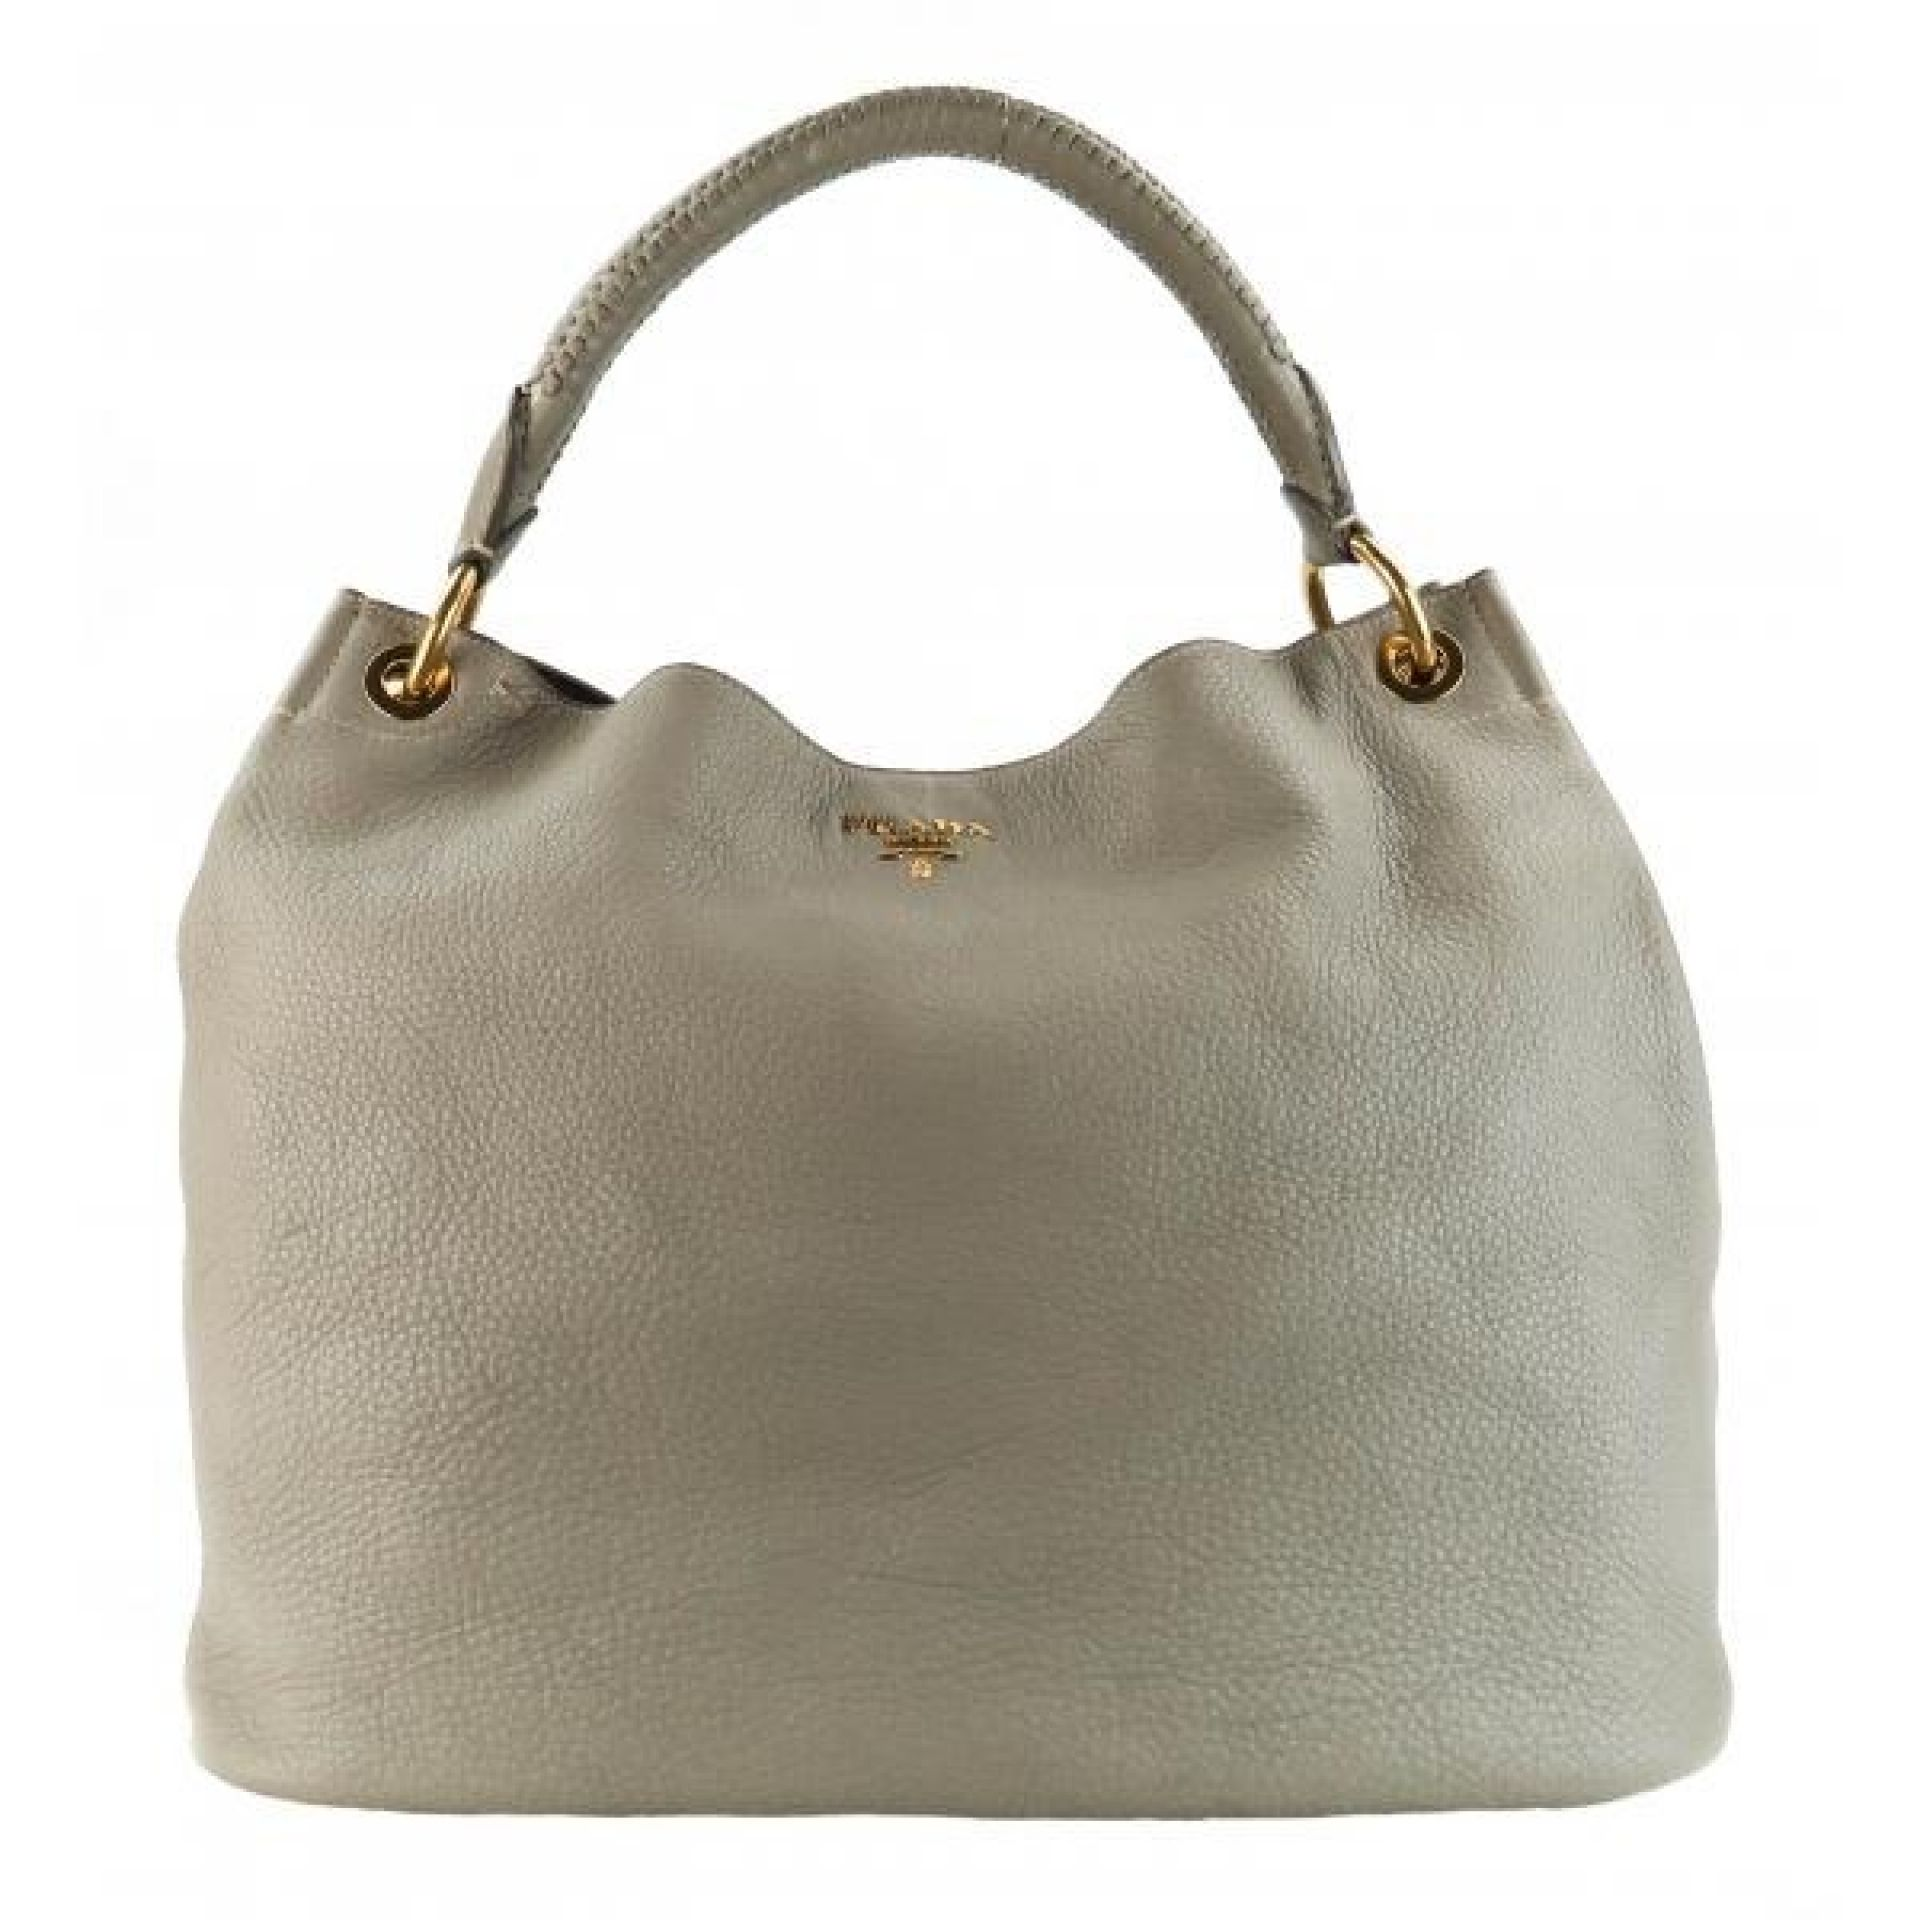 Prada Beige Pebbled Leather Vitello Daino Hobo Bag